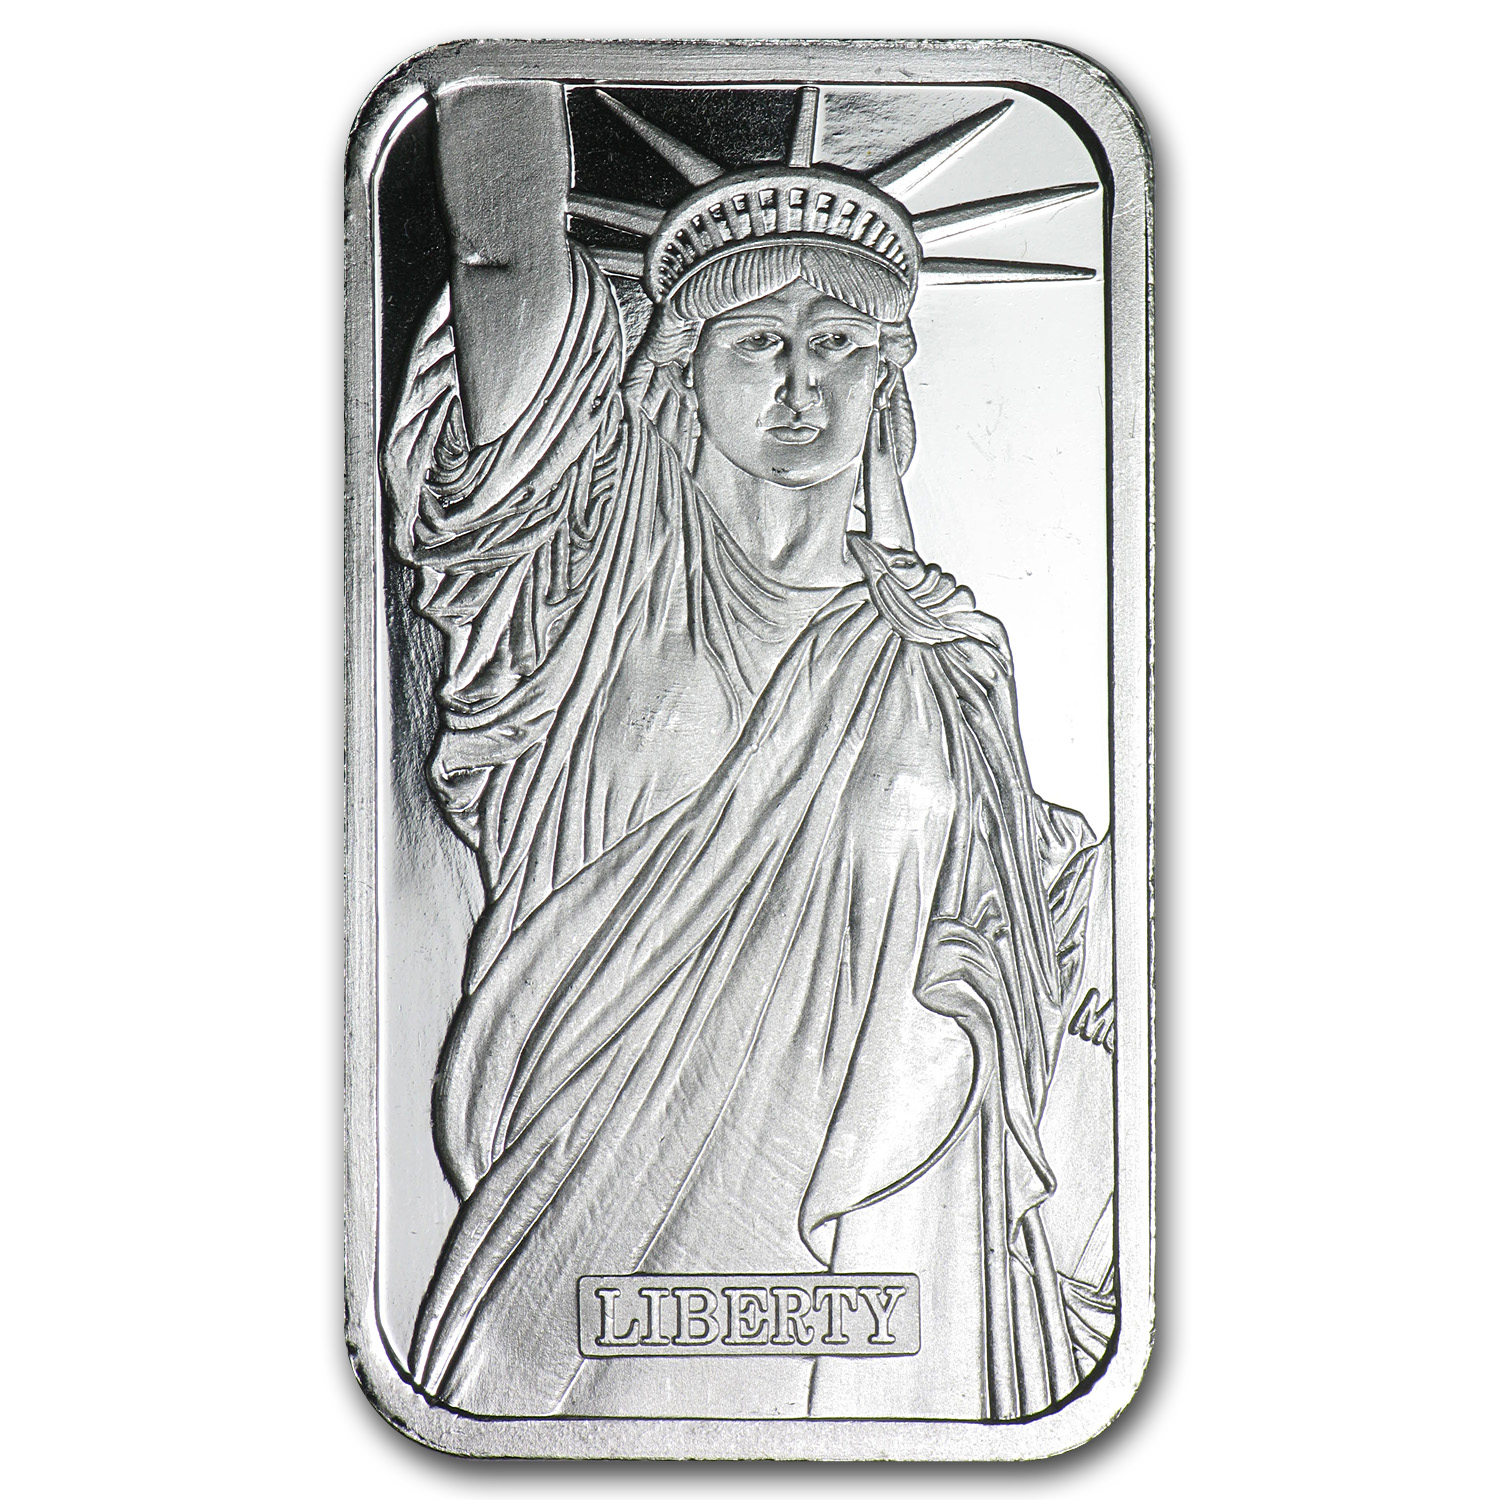 1 oz Silver Bar - Johnson Matthey (Statue of Liberty, MTB, MA)